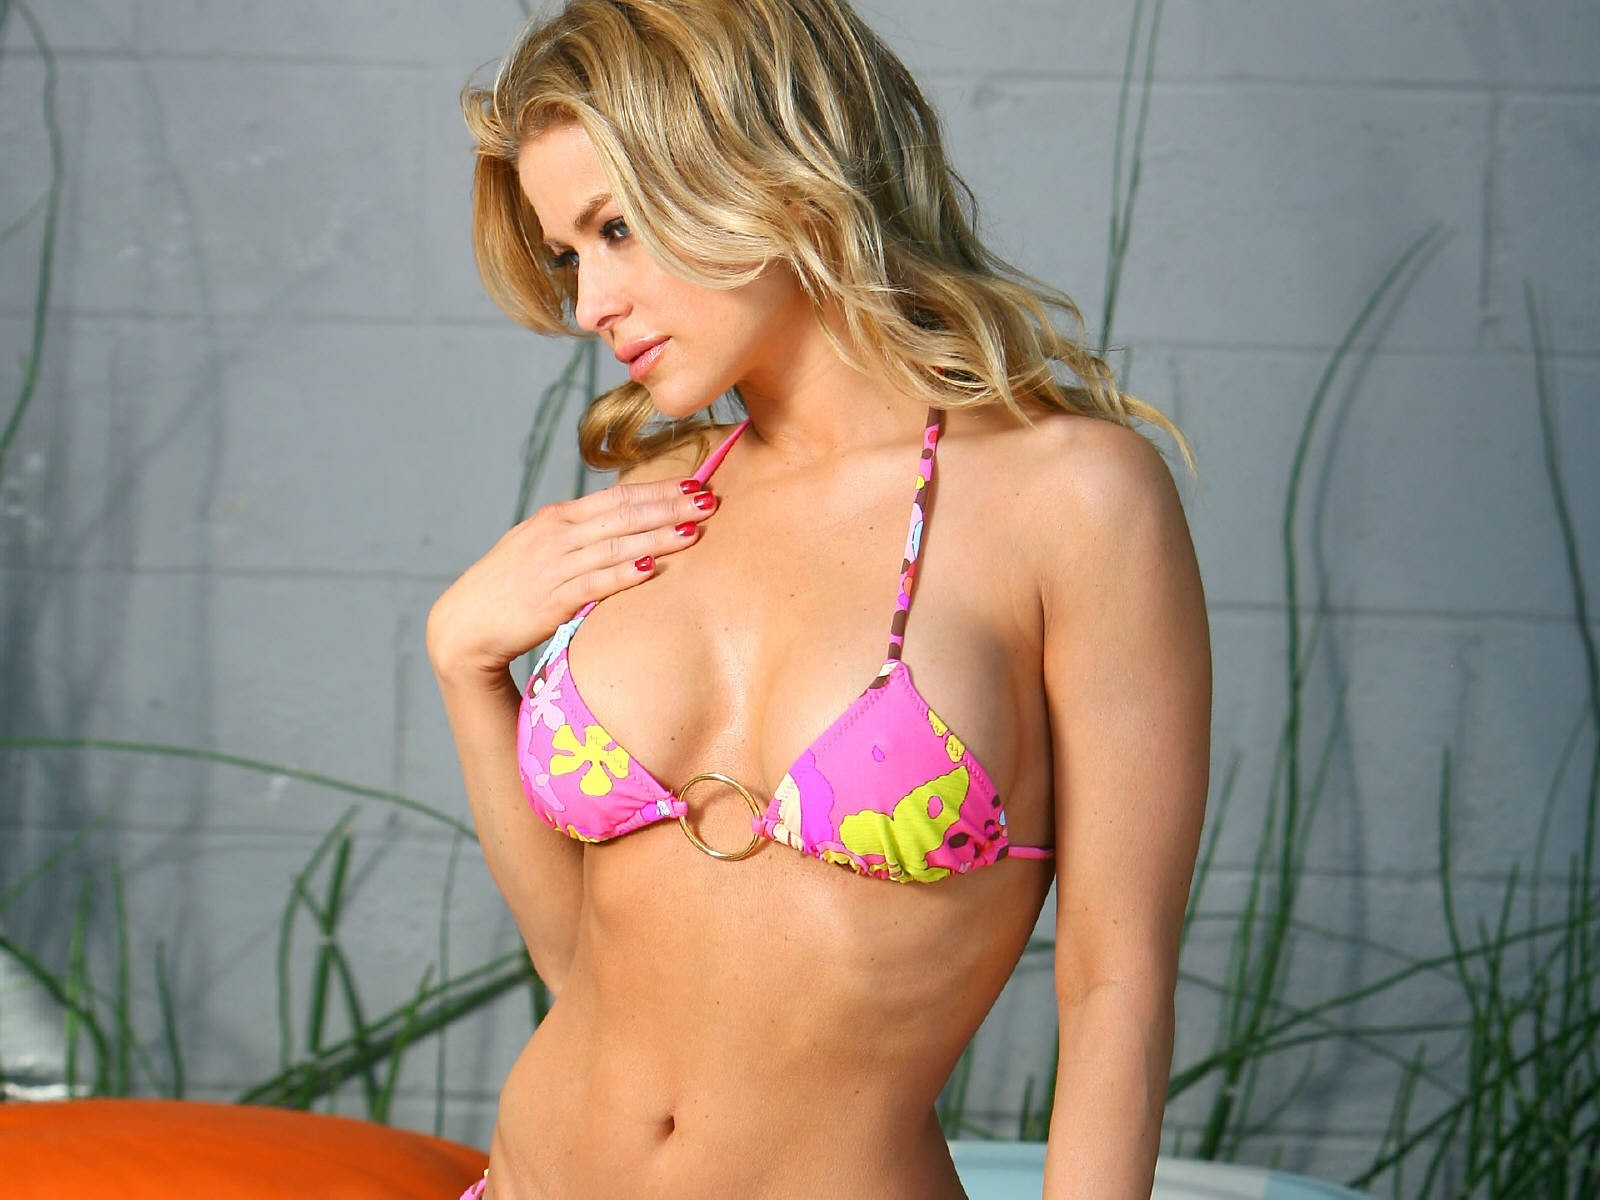 Wallpaper di Carmen Electra in bikini rosa shocking